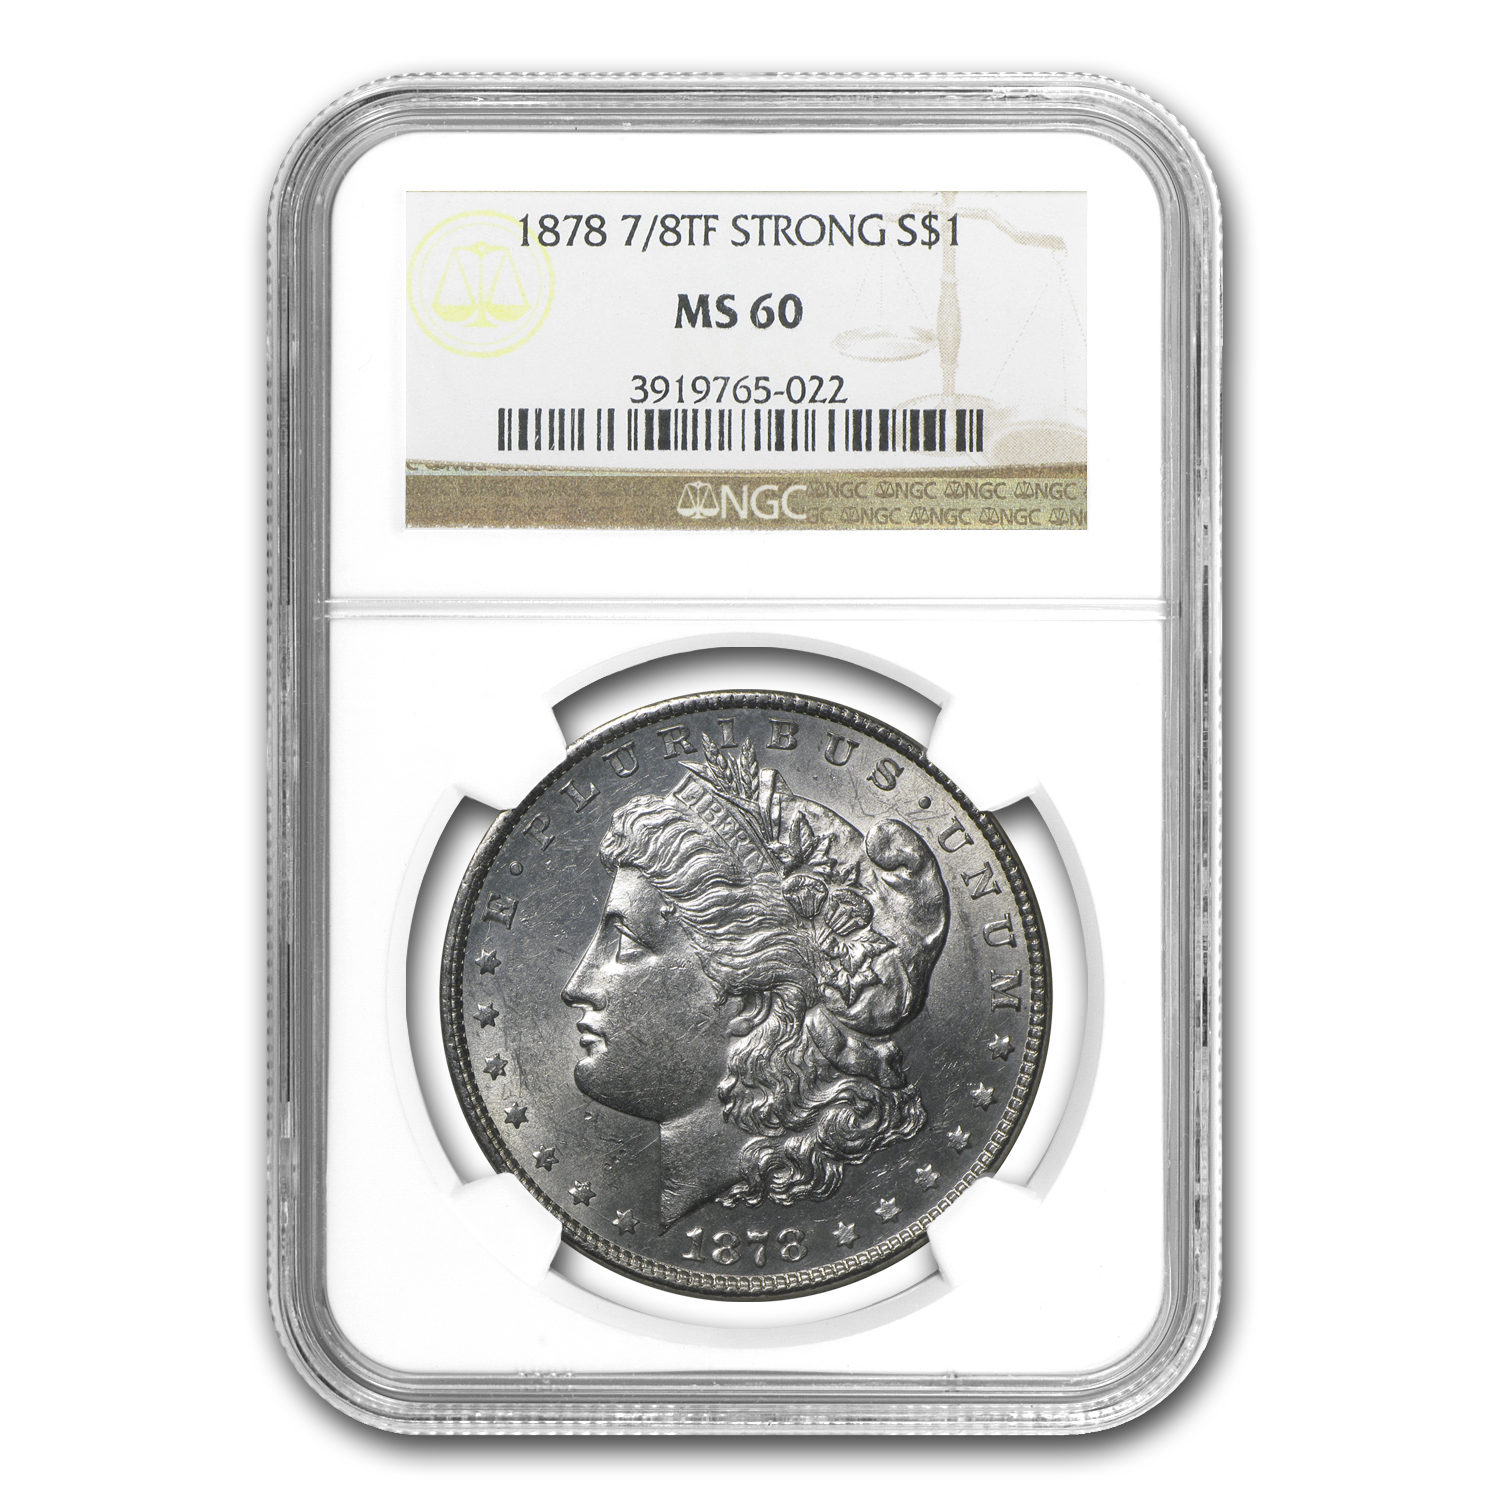 1878 Morgan Dollar 7/8 TF MS-60 NGC (Strong)